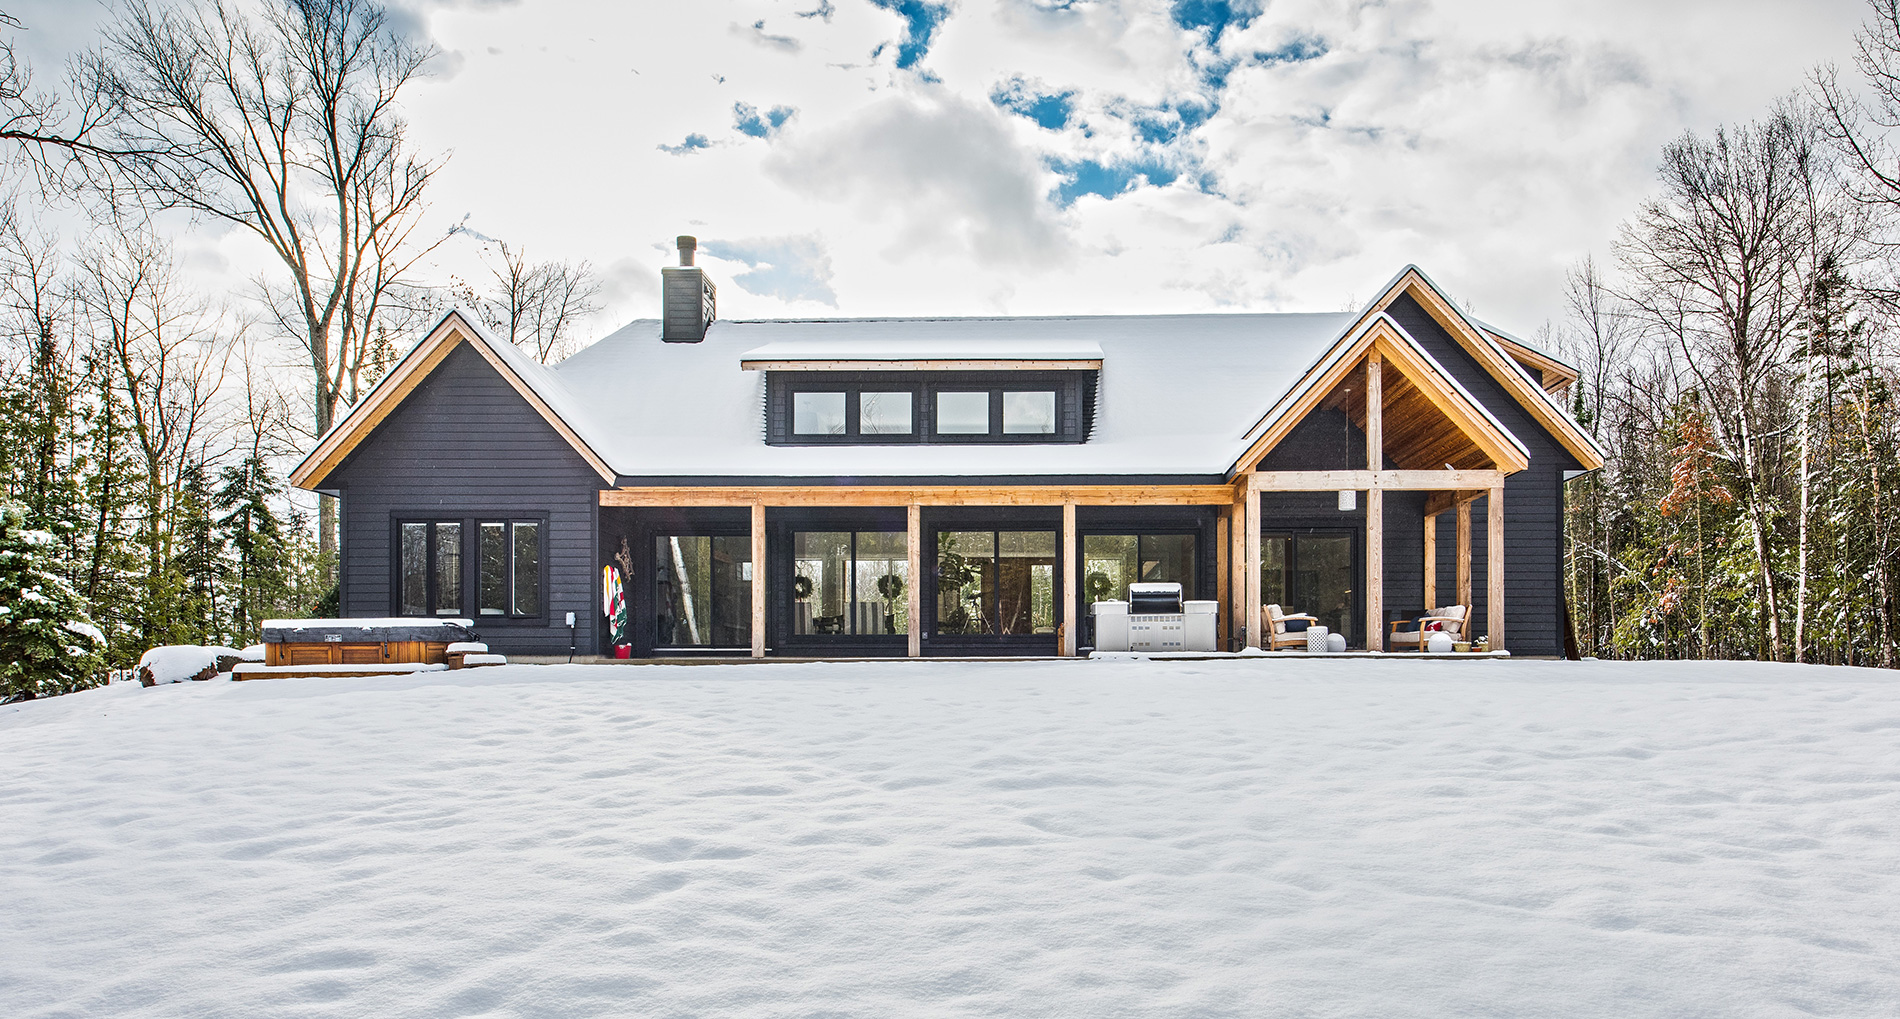 L. Patten & Sons knows what it takes to build the best custom home in Collingwood.